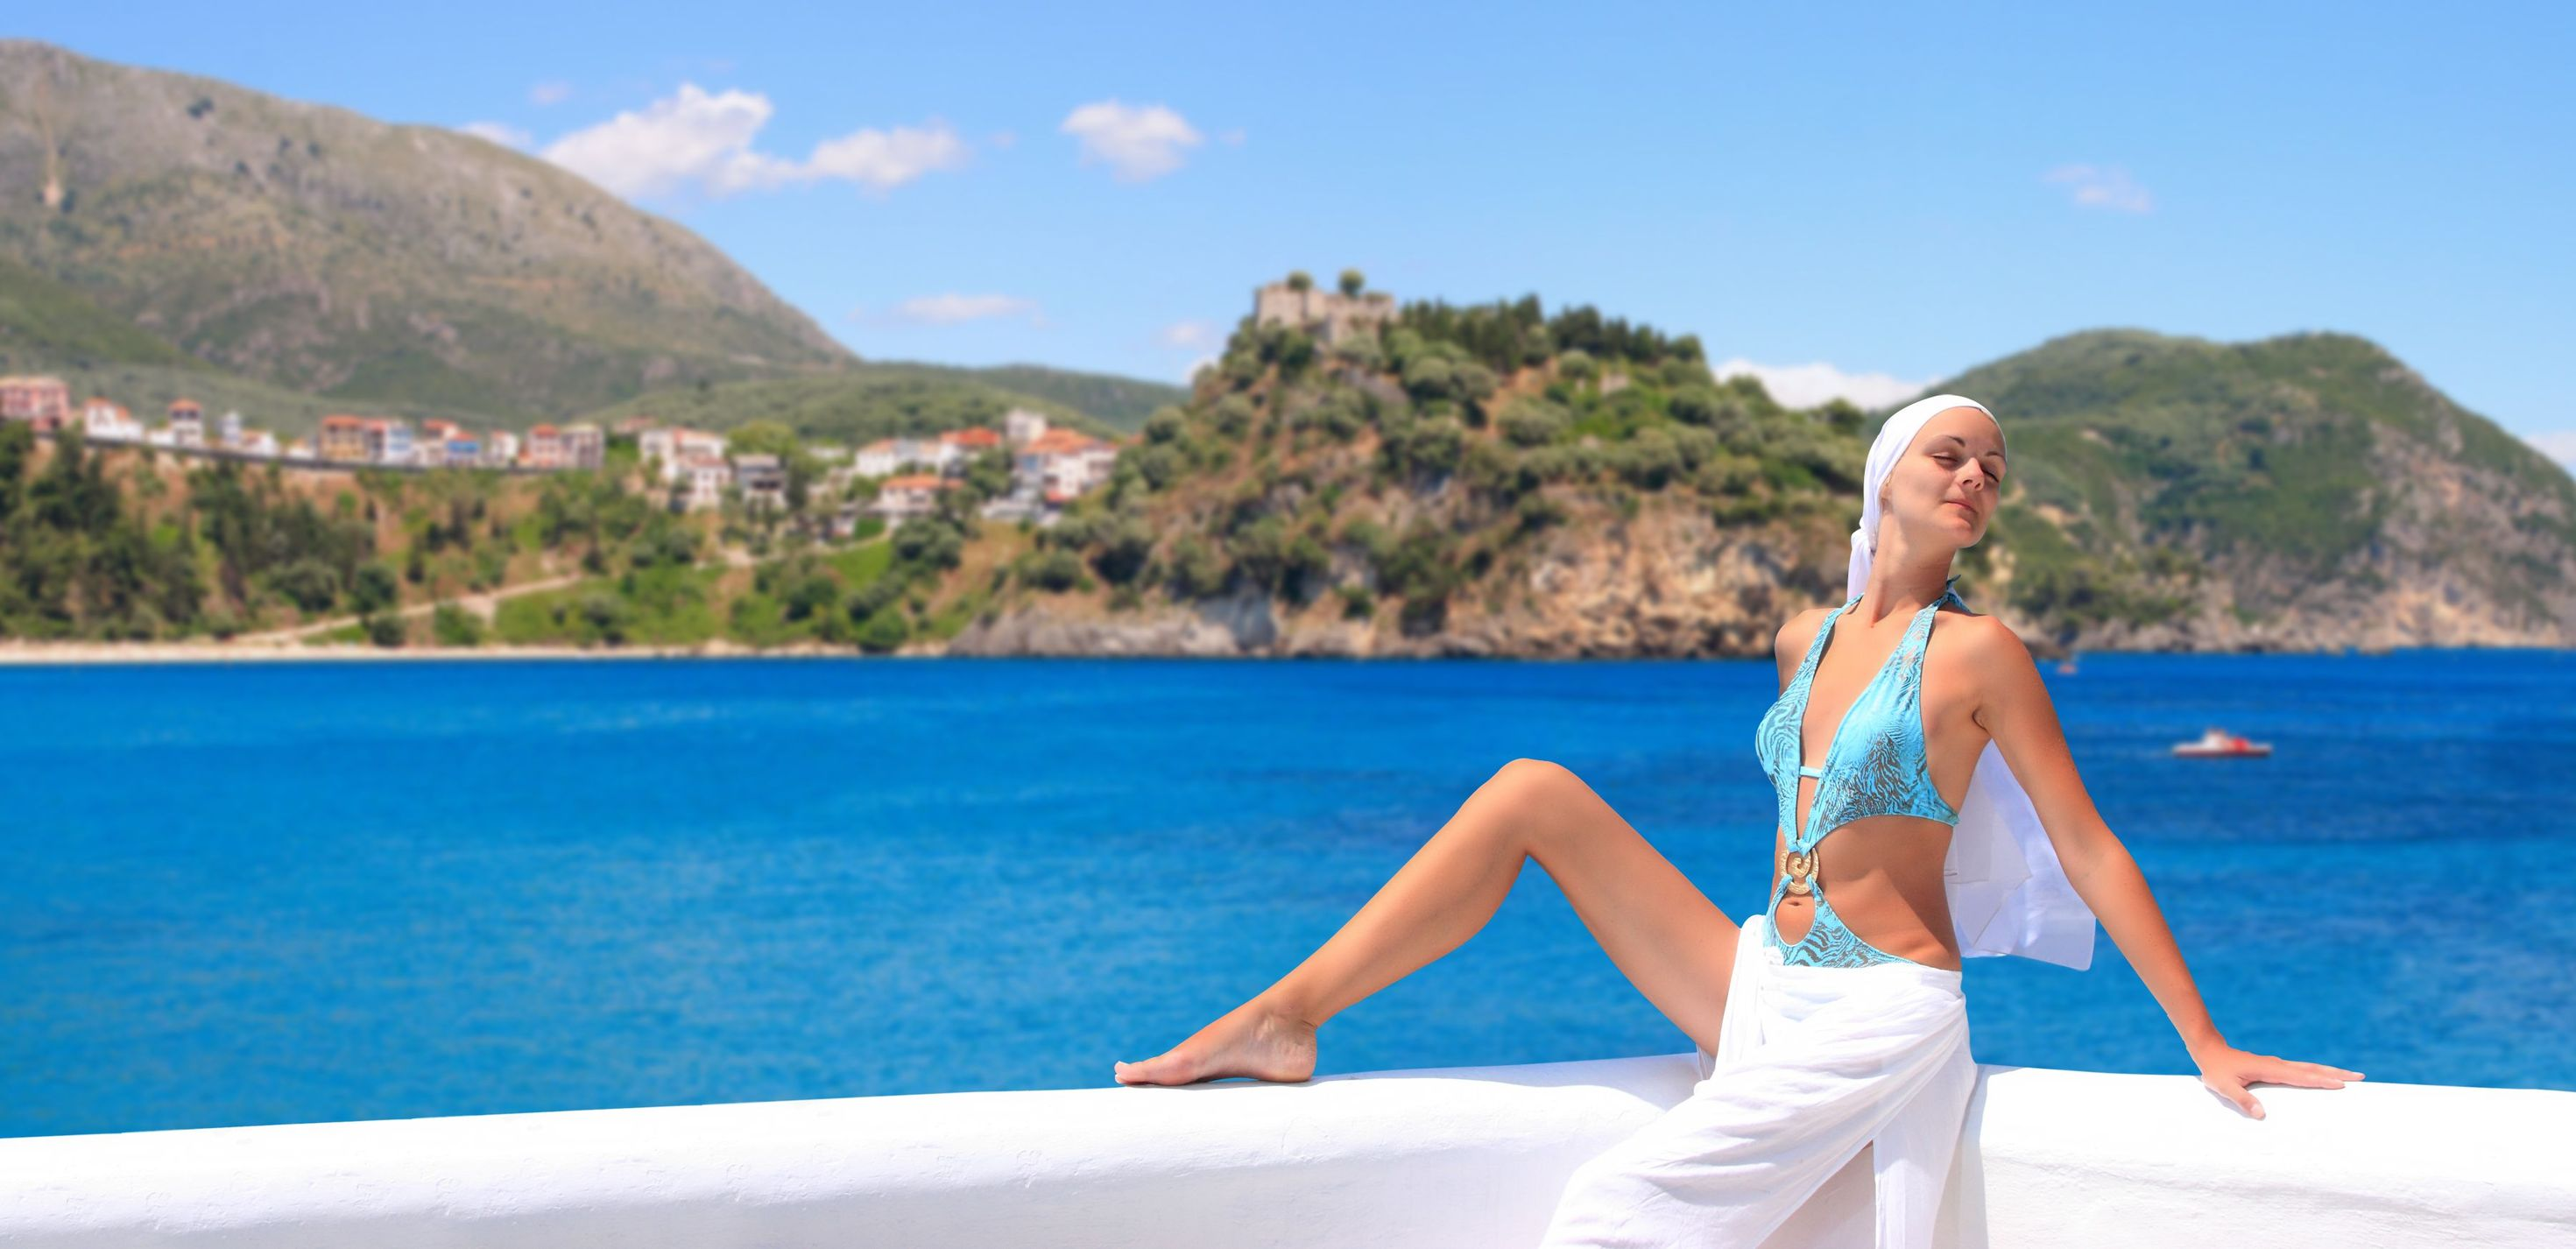 Visit-Greece-Beautiful-Young-Woman-Relaxing-by-The-Beach-in-Greece